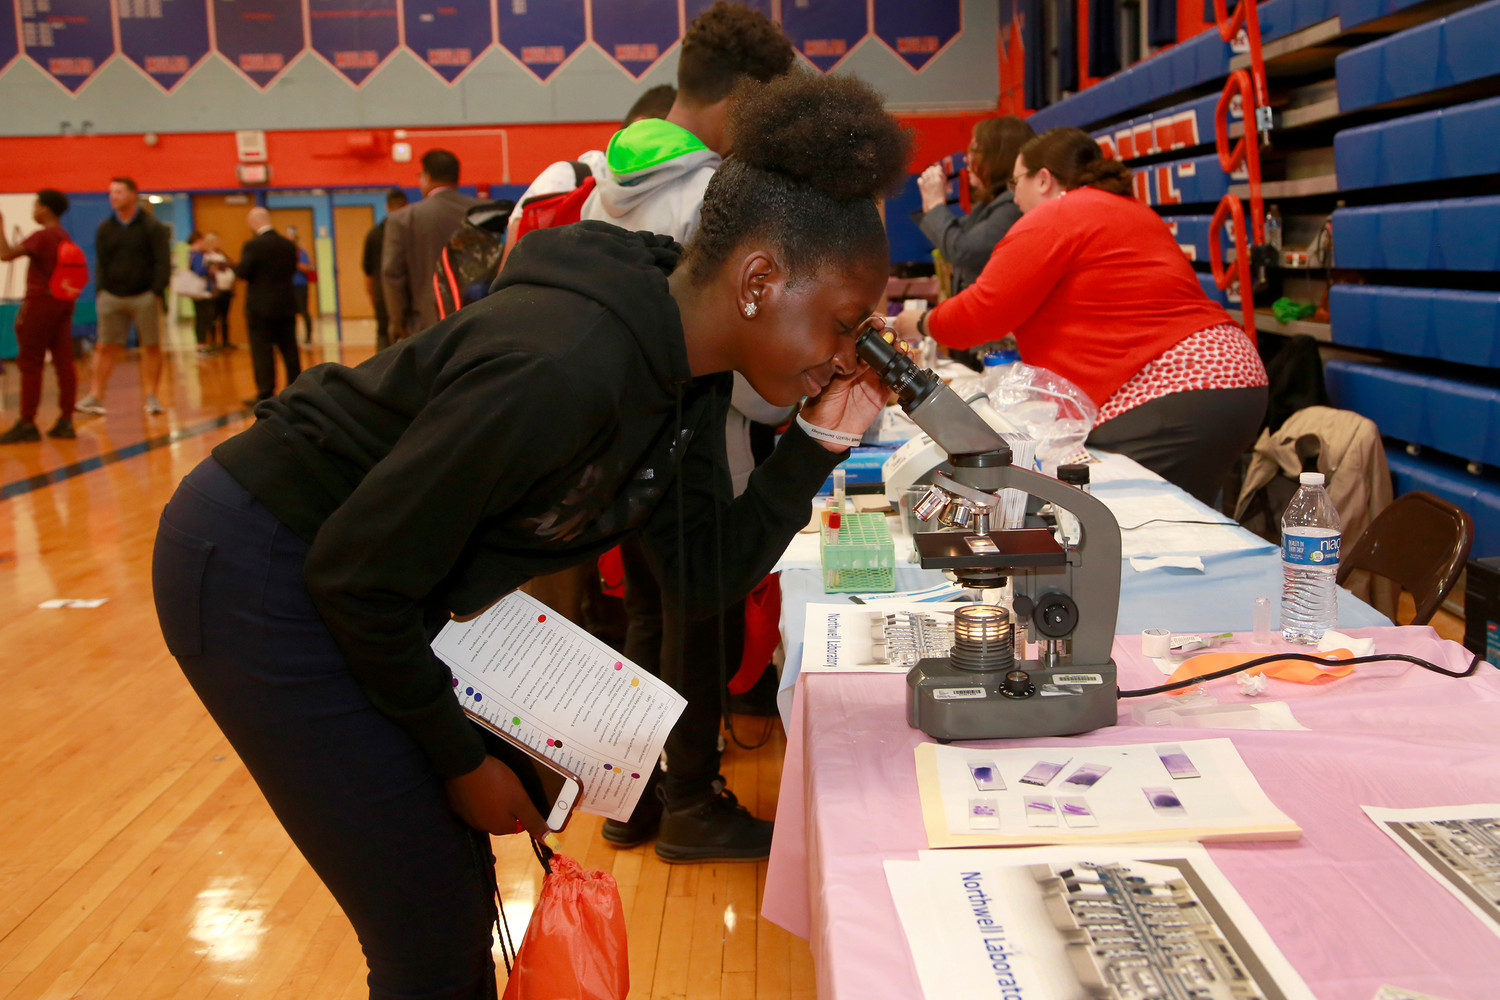 Freshman Medina Davidson examined a stomach biopsy during Medical Career Day at Malverne High School last Friday.